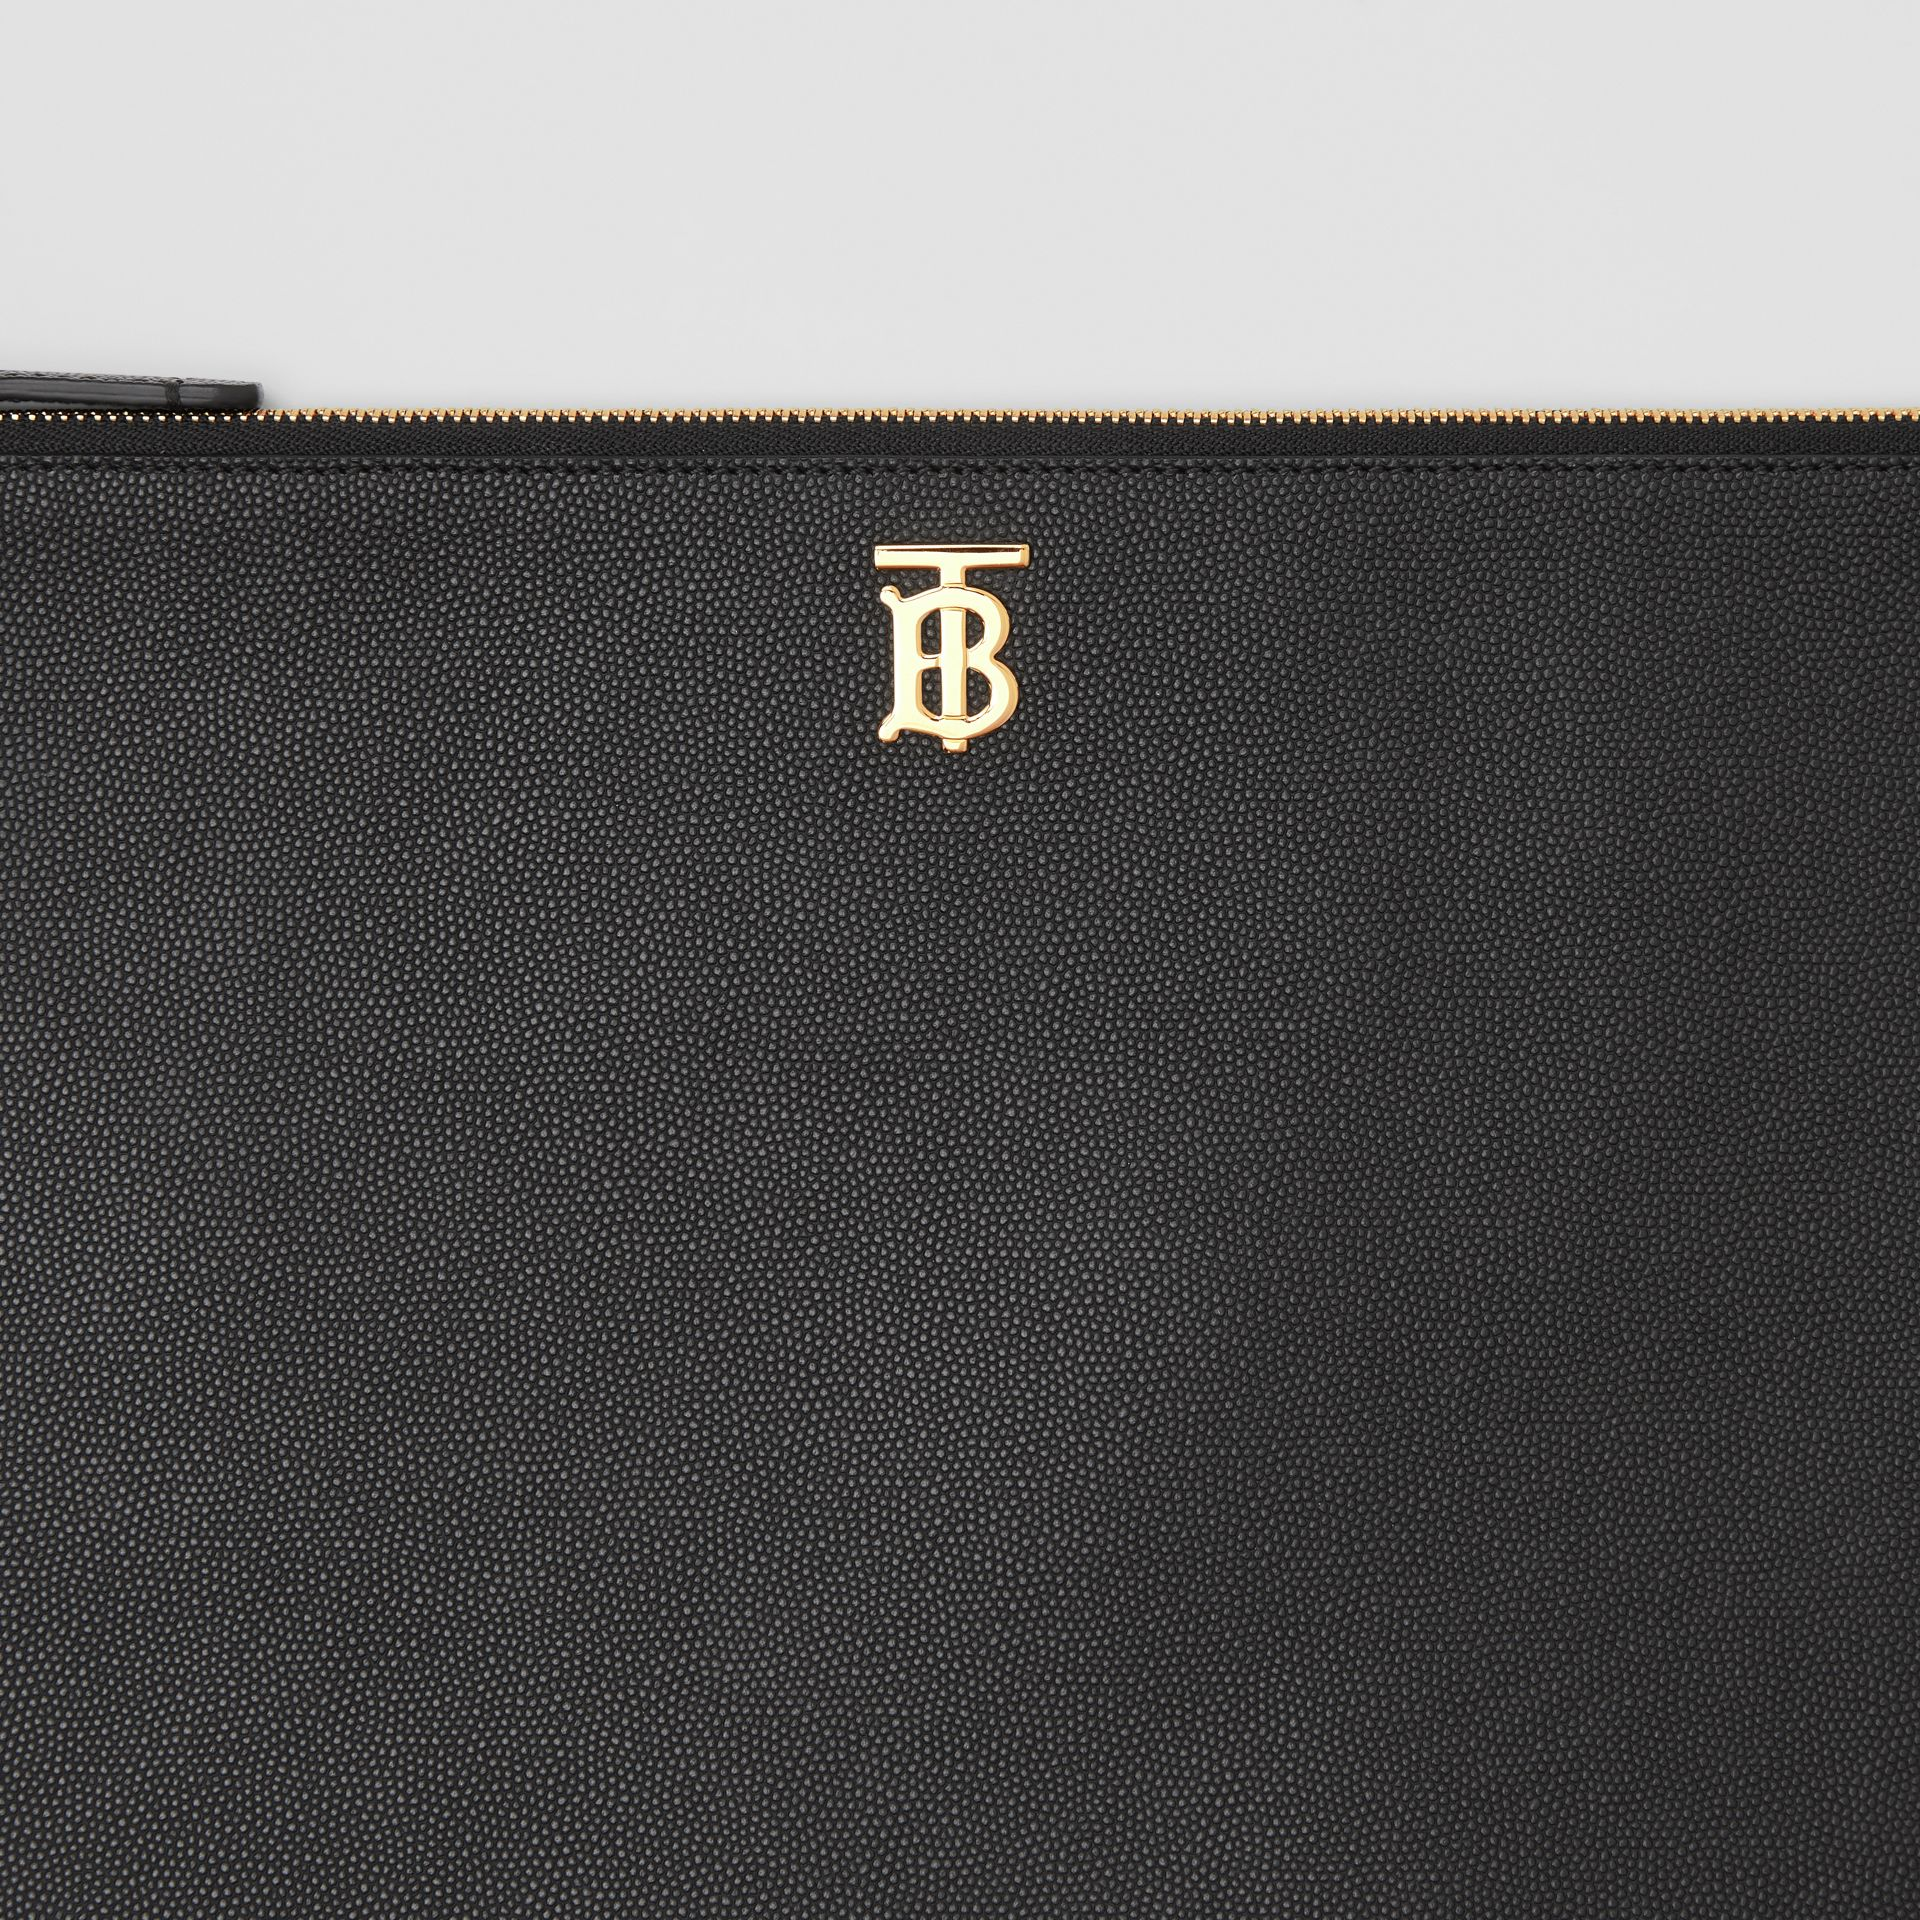 Monogram Motif Grainy Leather Pouch in Black - Women | Burberry United States - gallery image 1